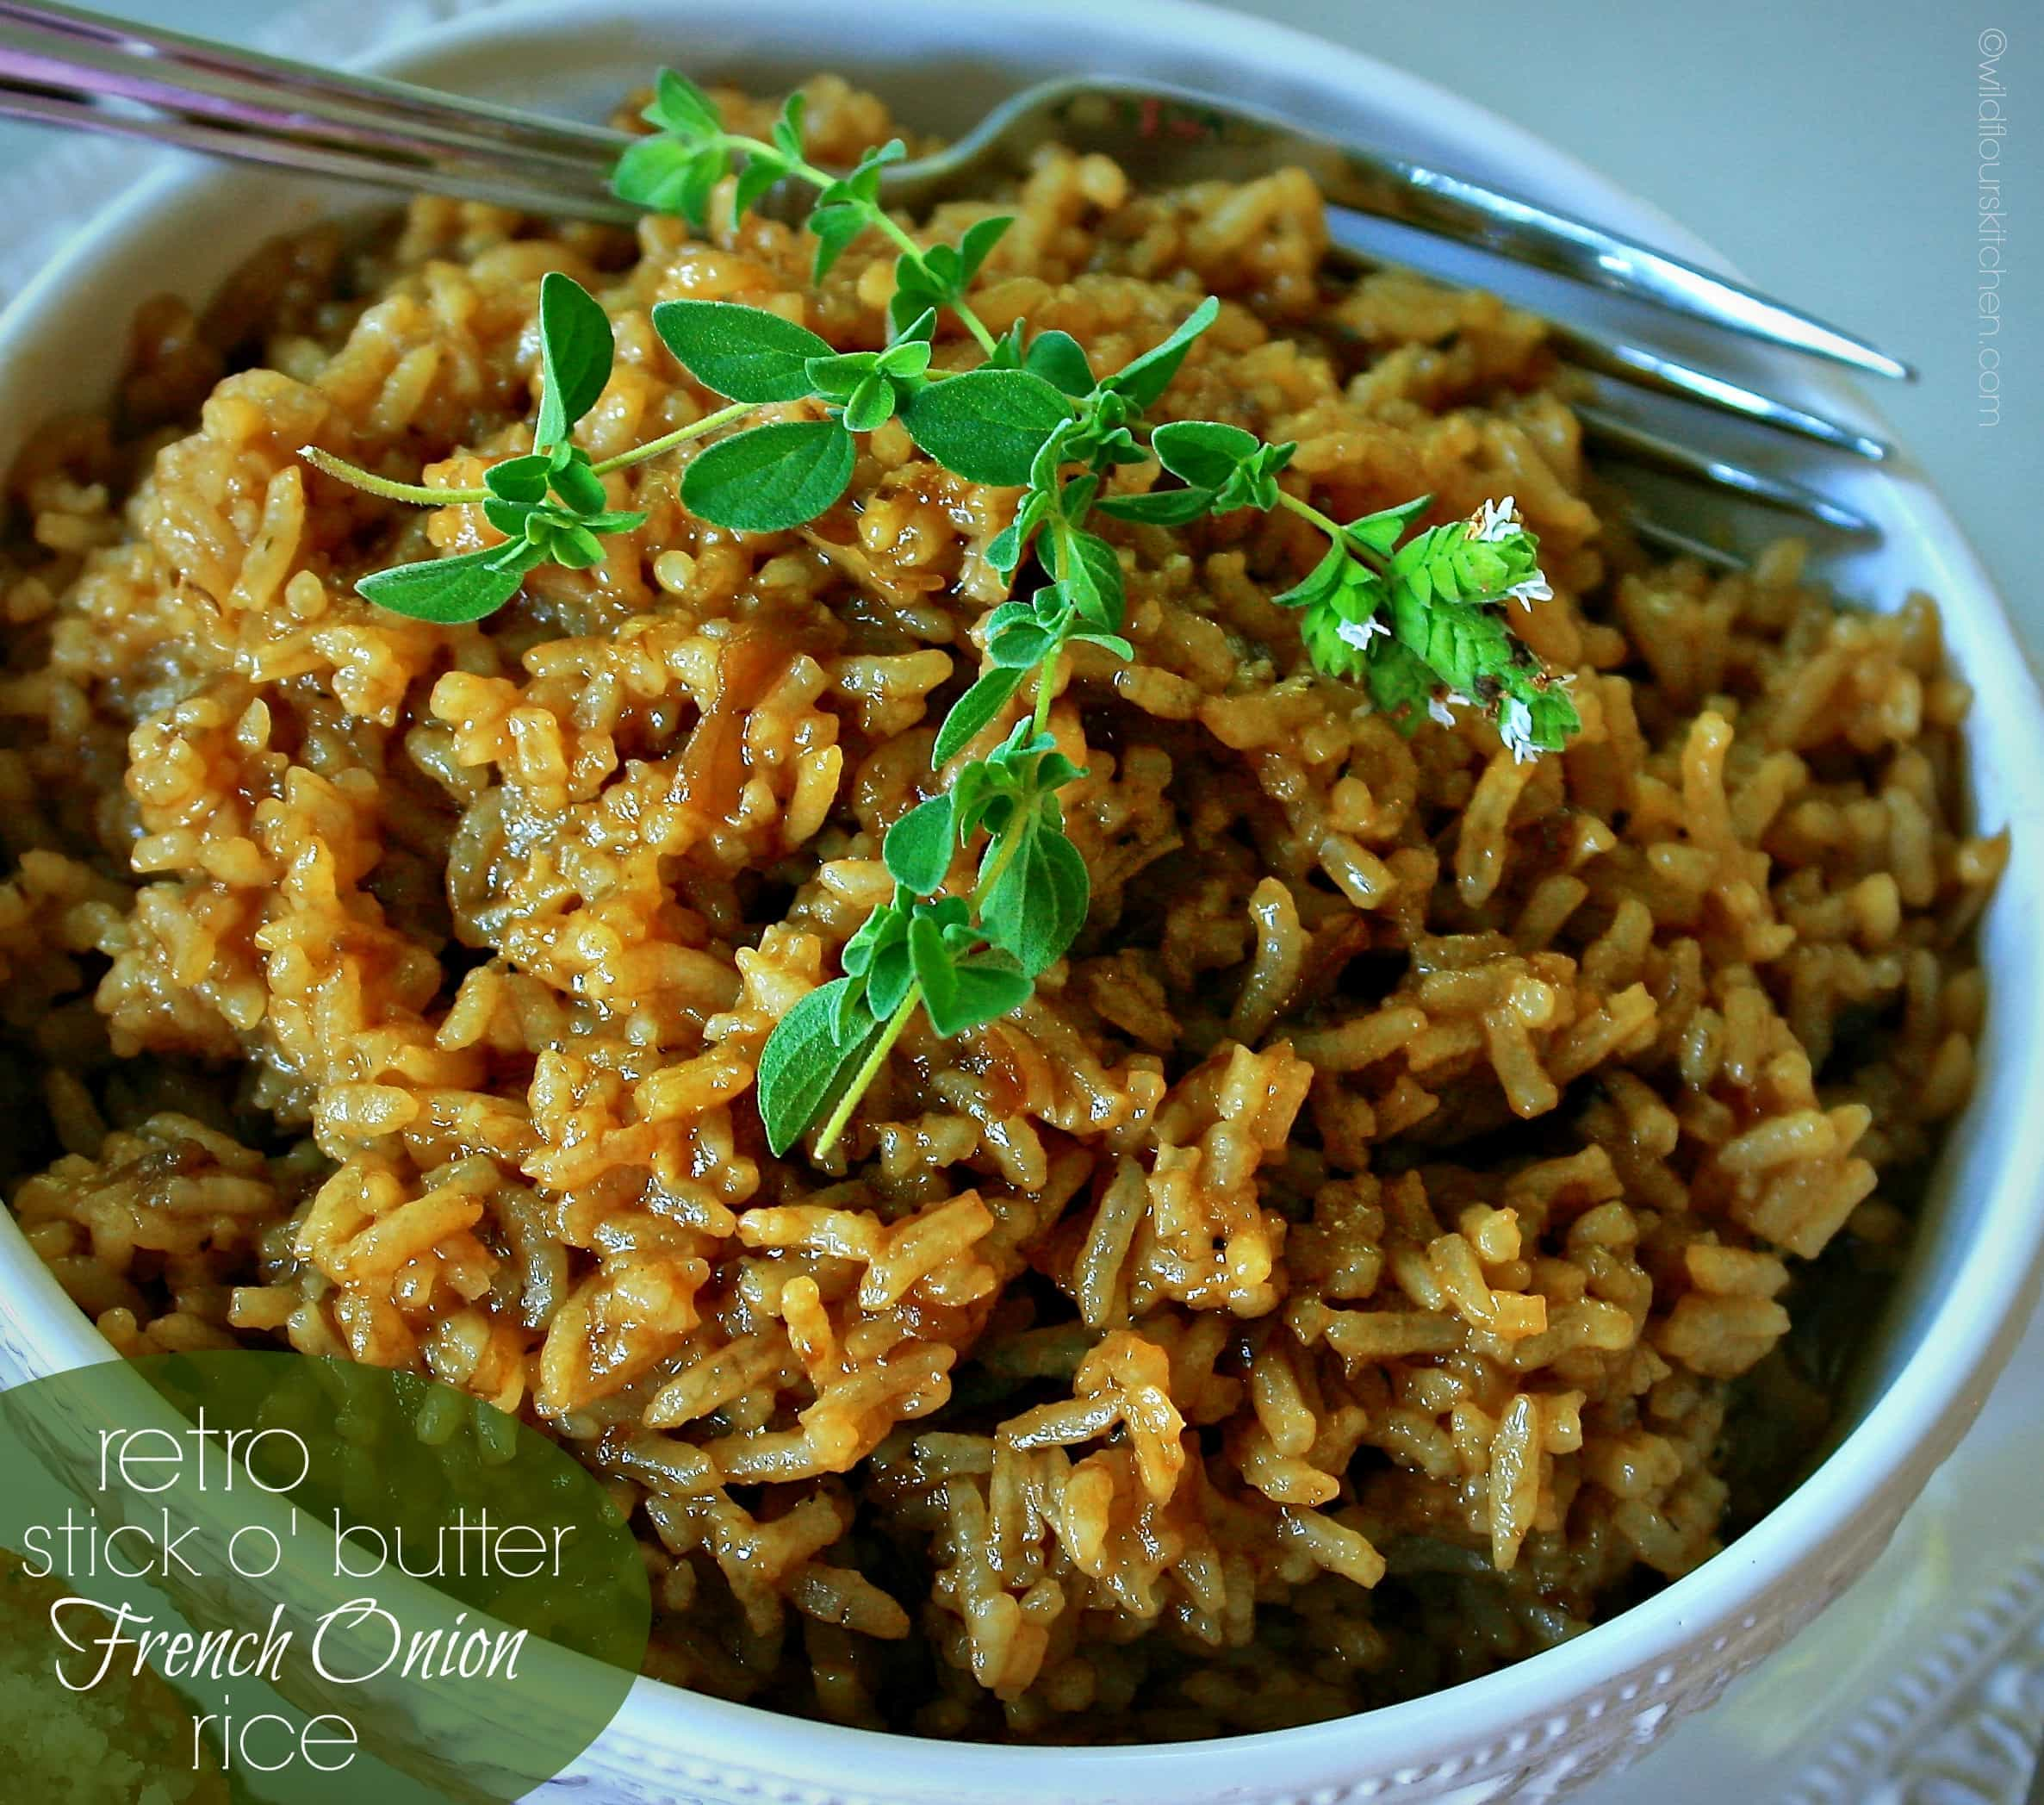 How to make brown rice with beef consomme